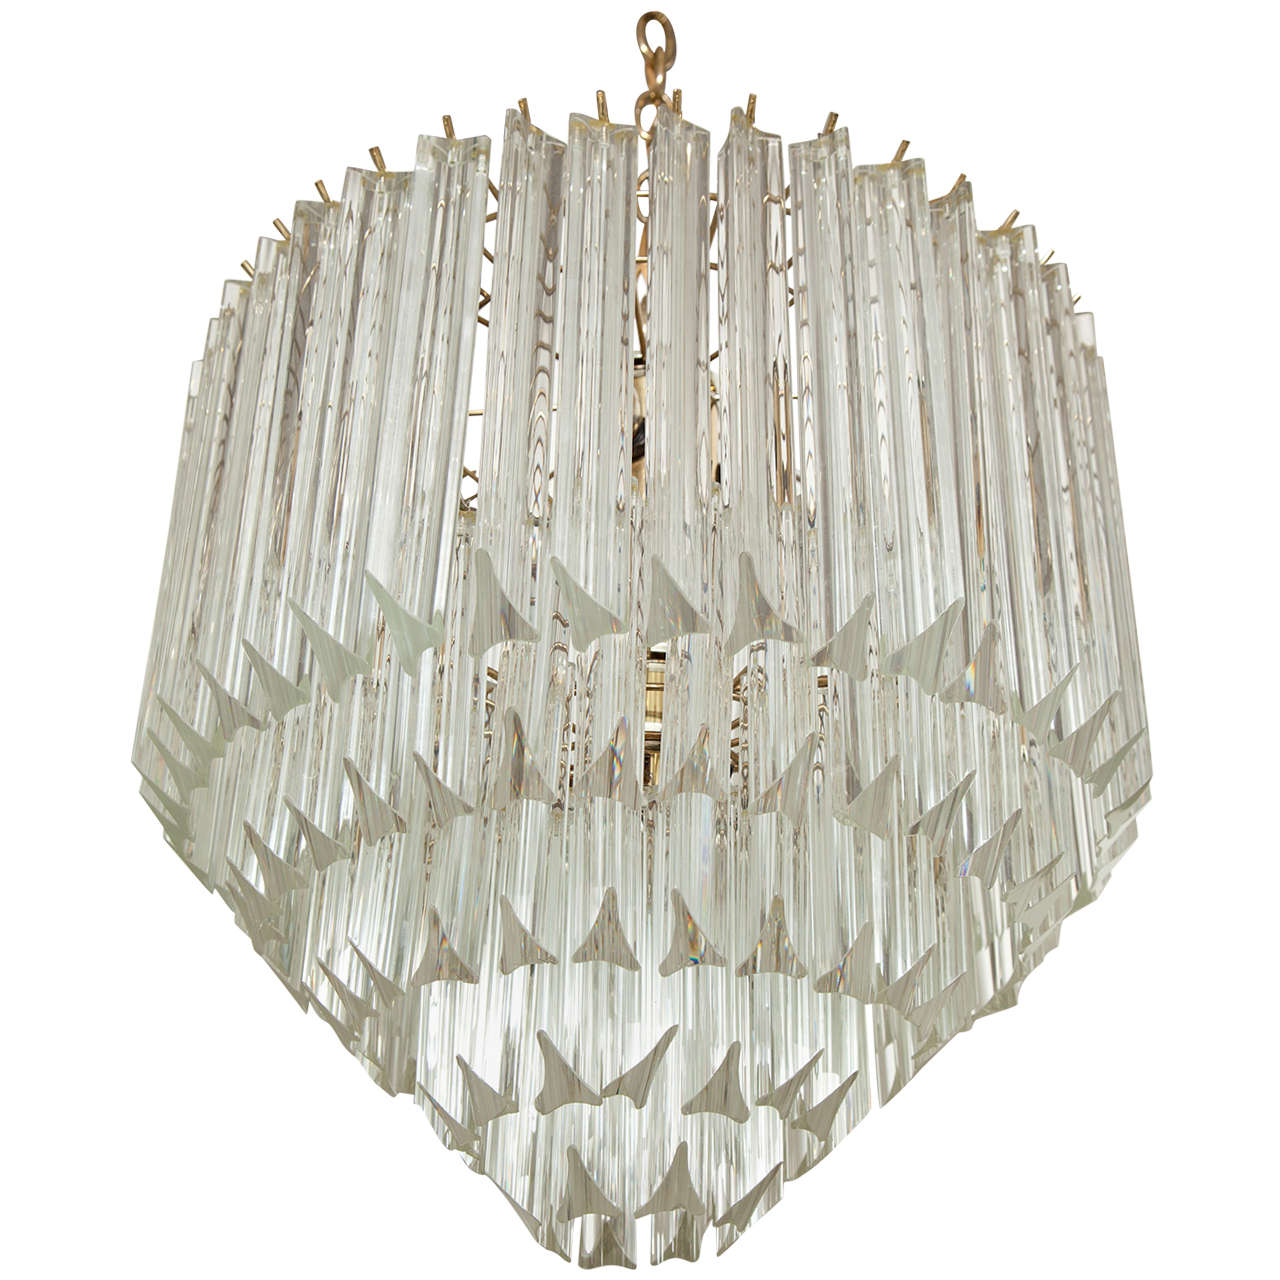 Camer glass chandeliers and pendants 71 for sale at 1stdibs five tier crystal prism chandelierflush mount by camer mozeypictures Choice Image